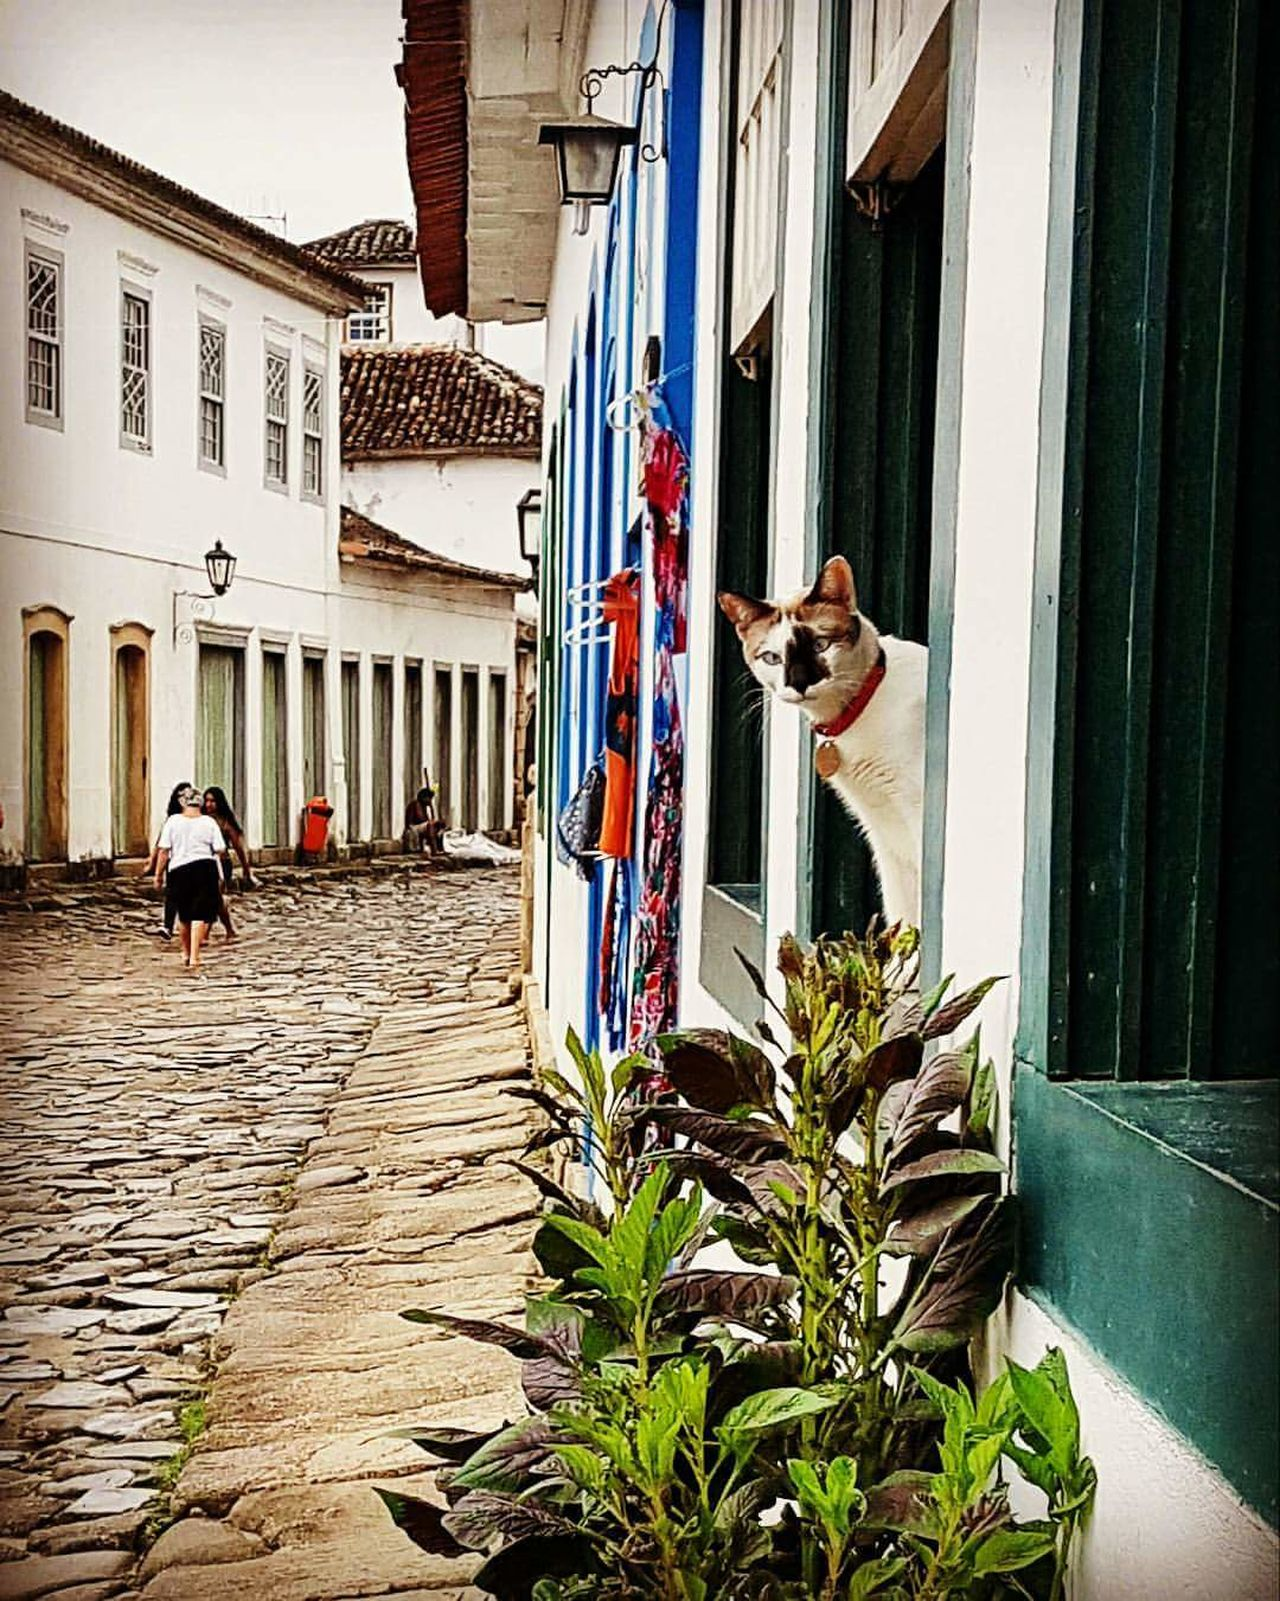 Architecture Building Exterior Built Structure Flower Outdoors Day Adults Only People Adult Historic Historic City Cats Of EyeEm Cats 🐱 Cats Lovers  Cats Window Windows And Doors Doors DoorsAndWindowsProject Doors And Windows Around The World Paraty - RJ Paraty Paraty- Rj Paraty, Brazil Paraty Rio De Janeiro